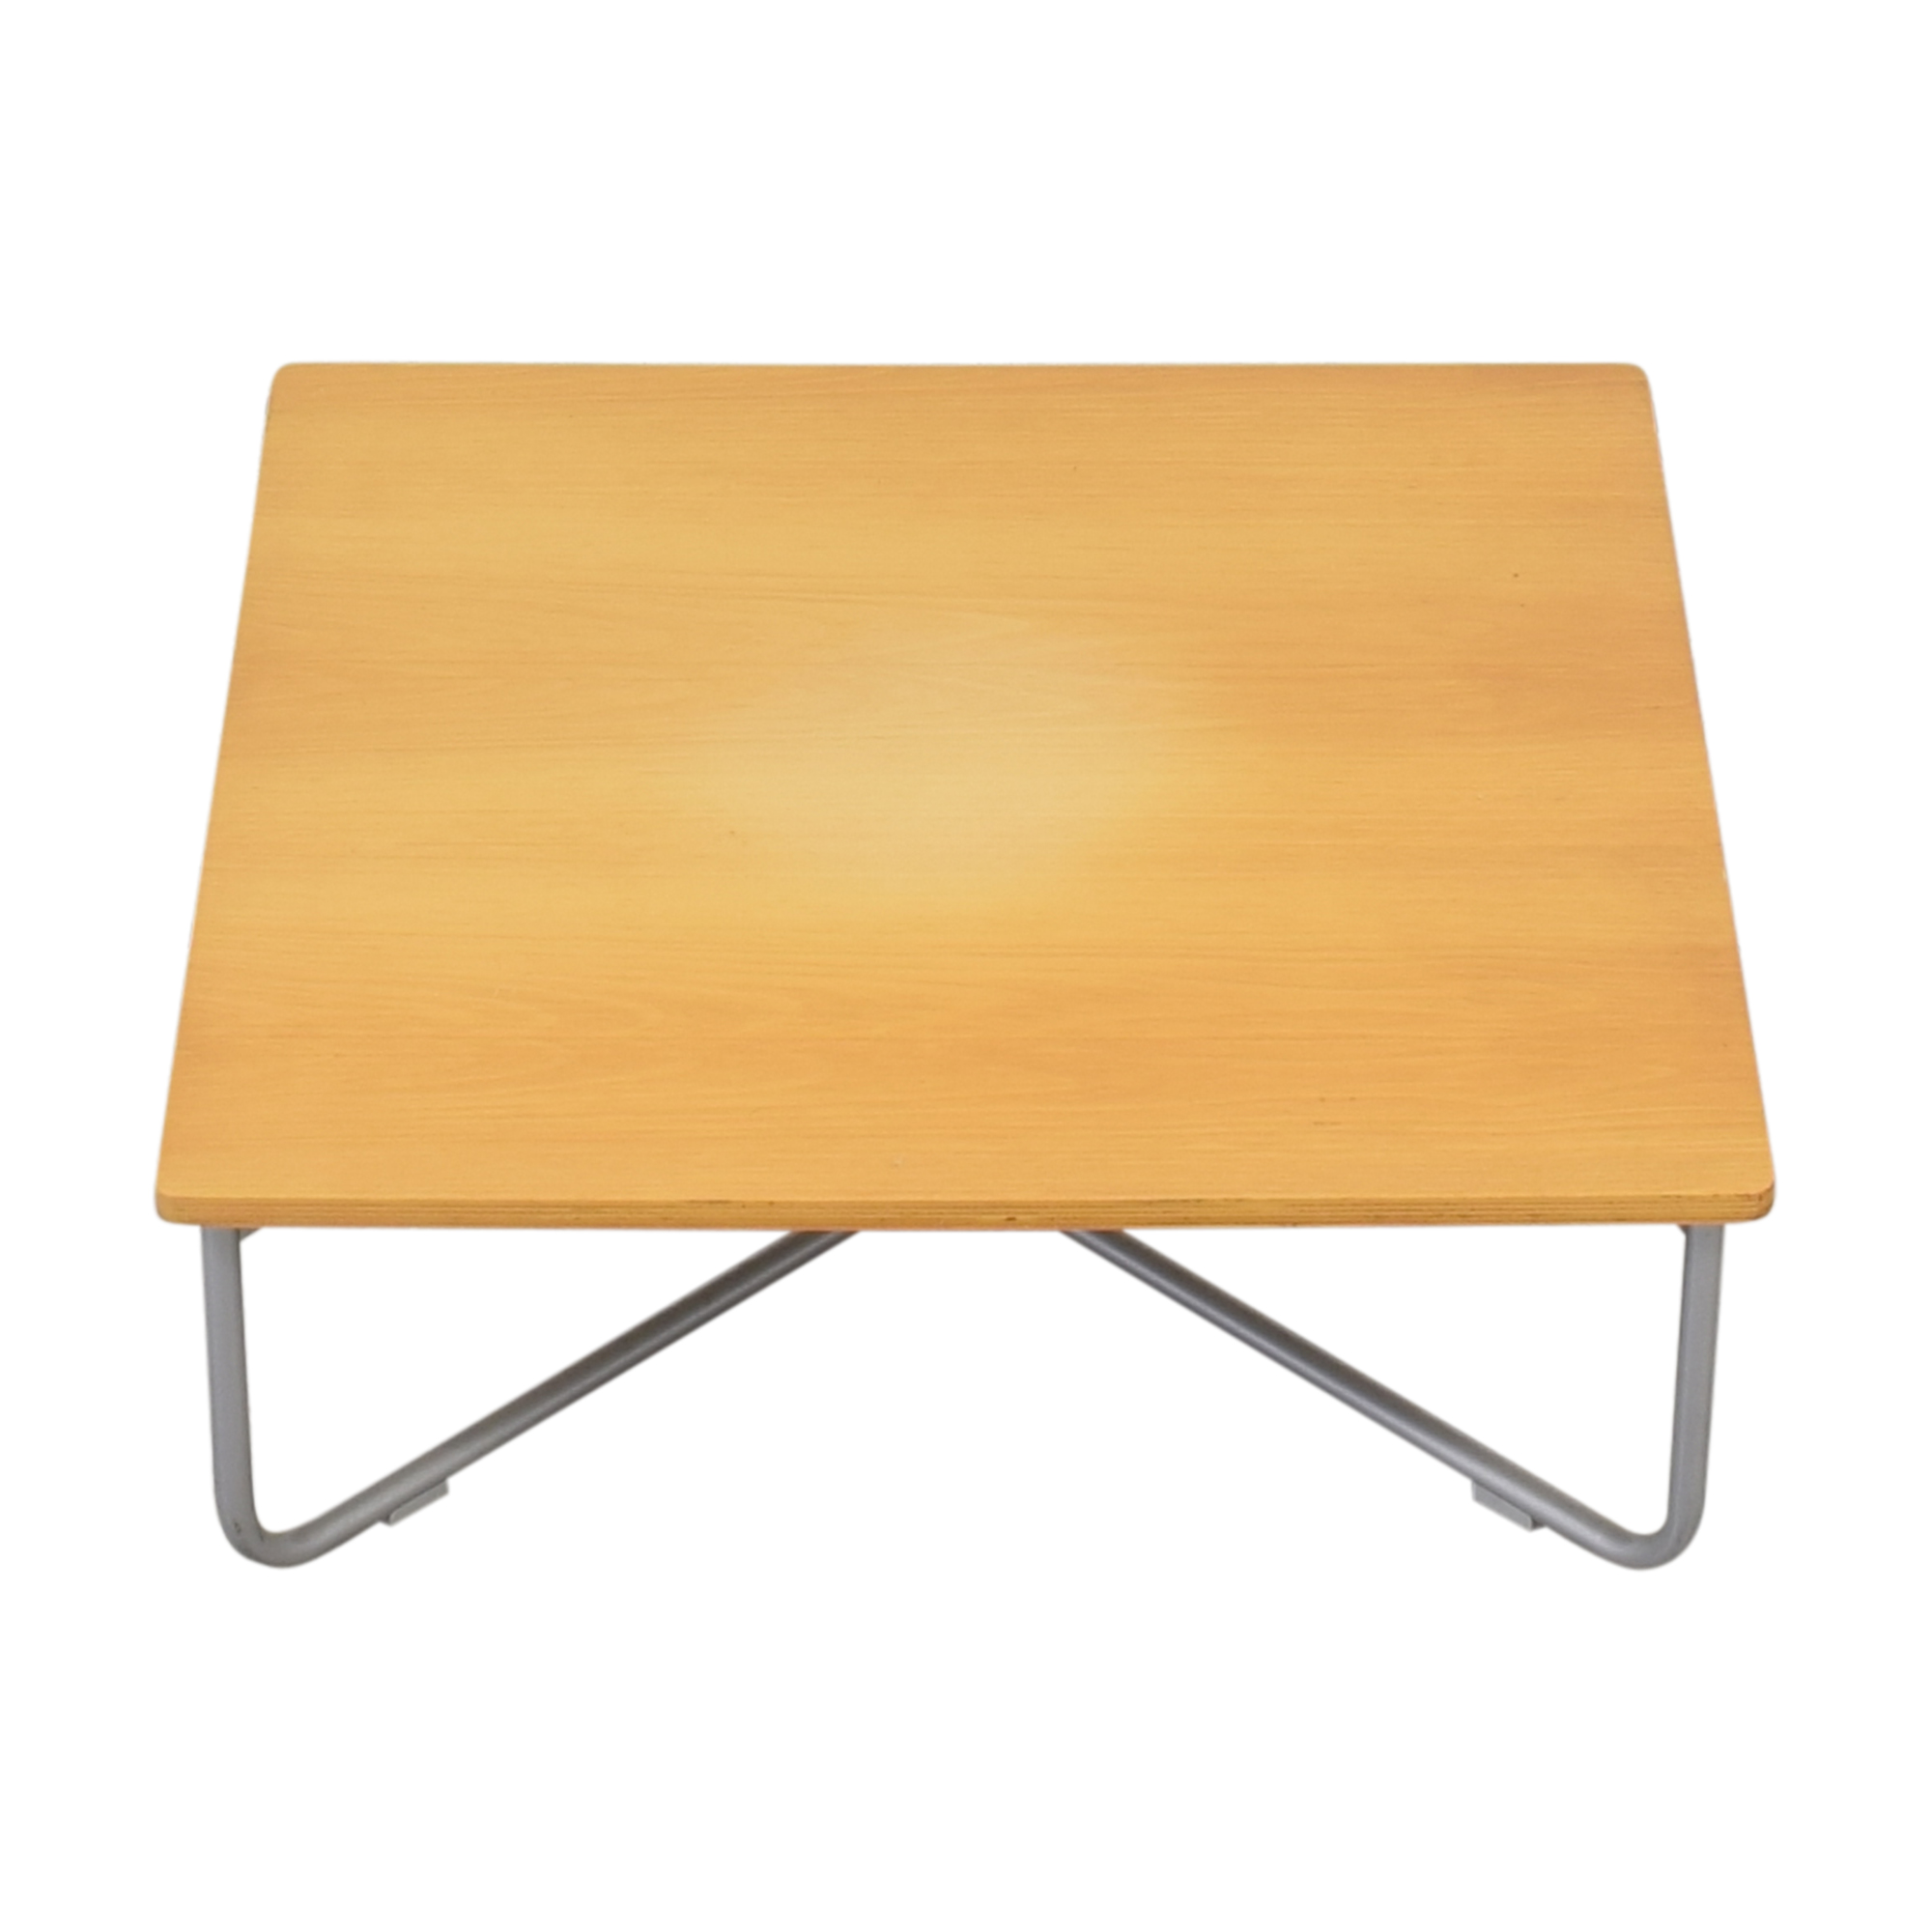 Swedese Swedese Havanna Small Table on sale